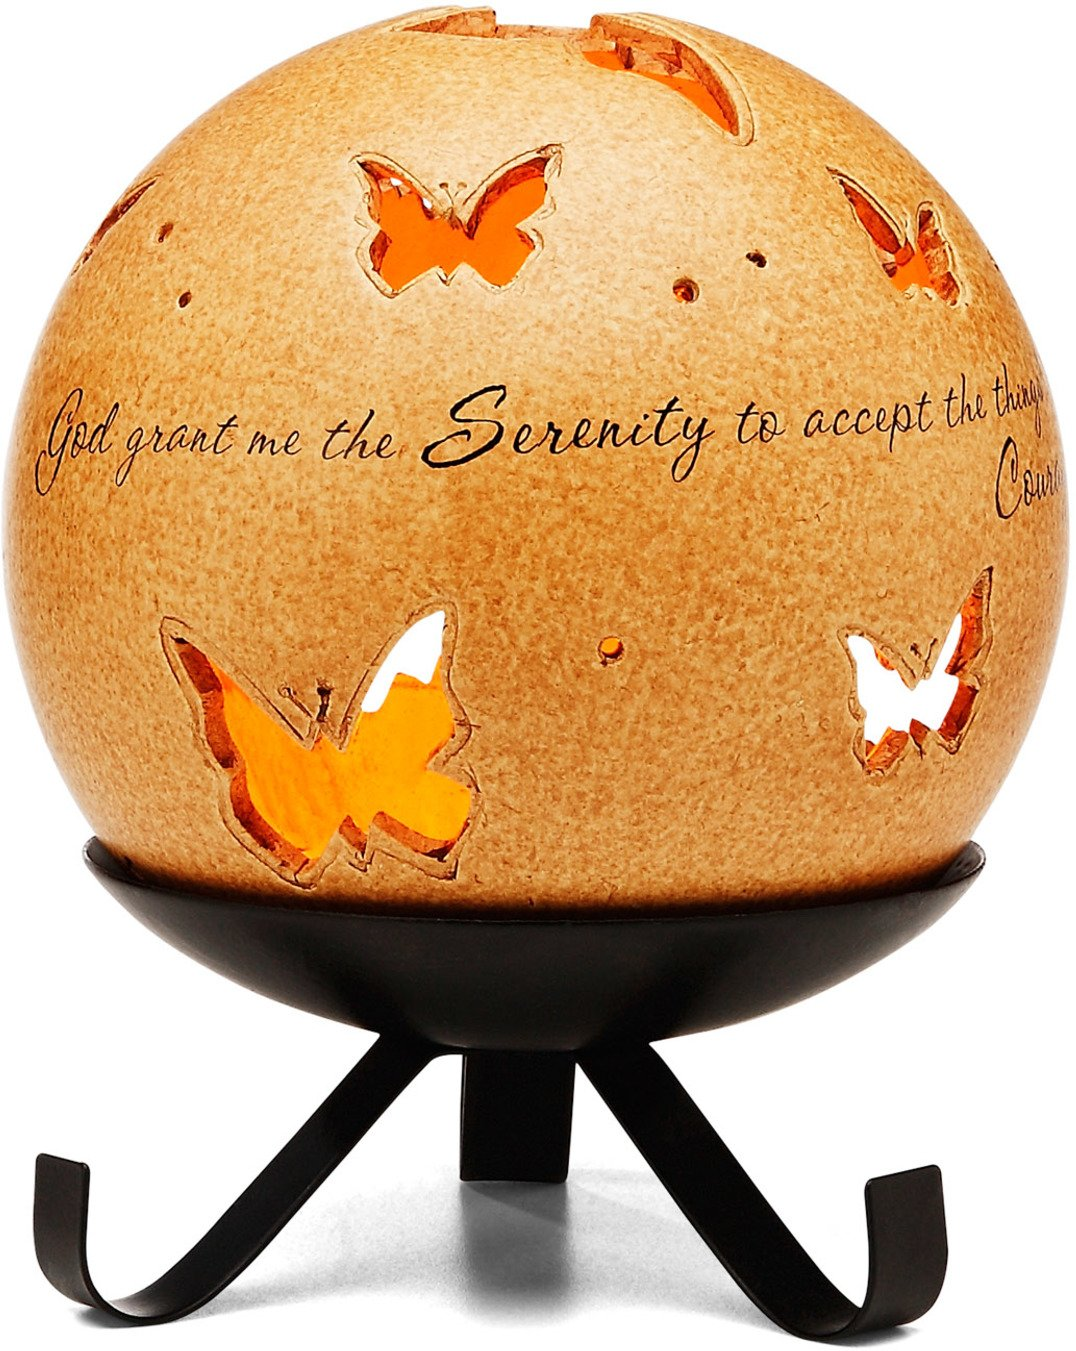 Comfort Candles Serenity Pavilion Gift Includes Tea Light Candle and Stand, 6-1/2-Inch, Butterfly Pierced Round Pavilion Gift Company 05974